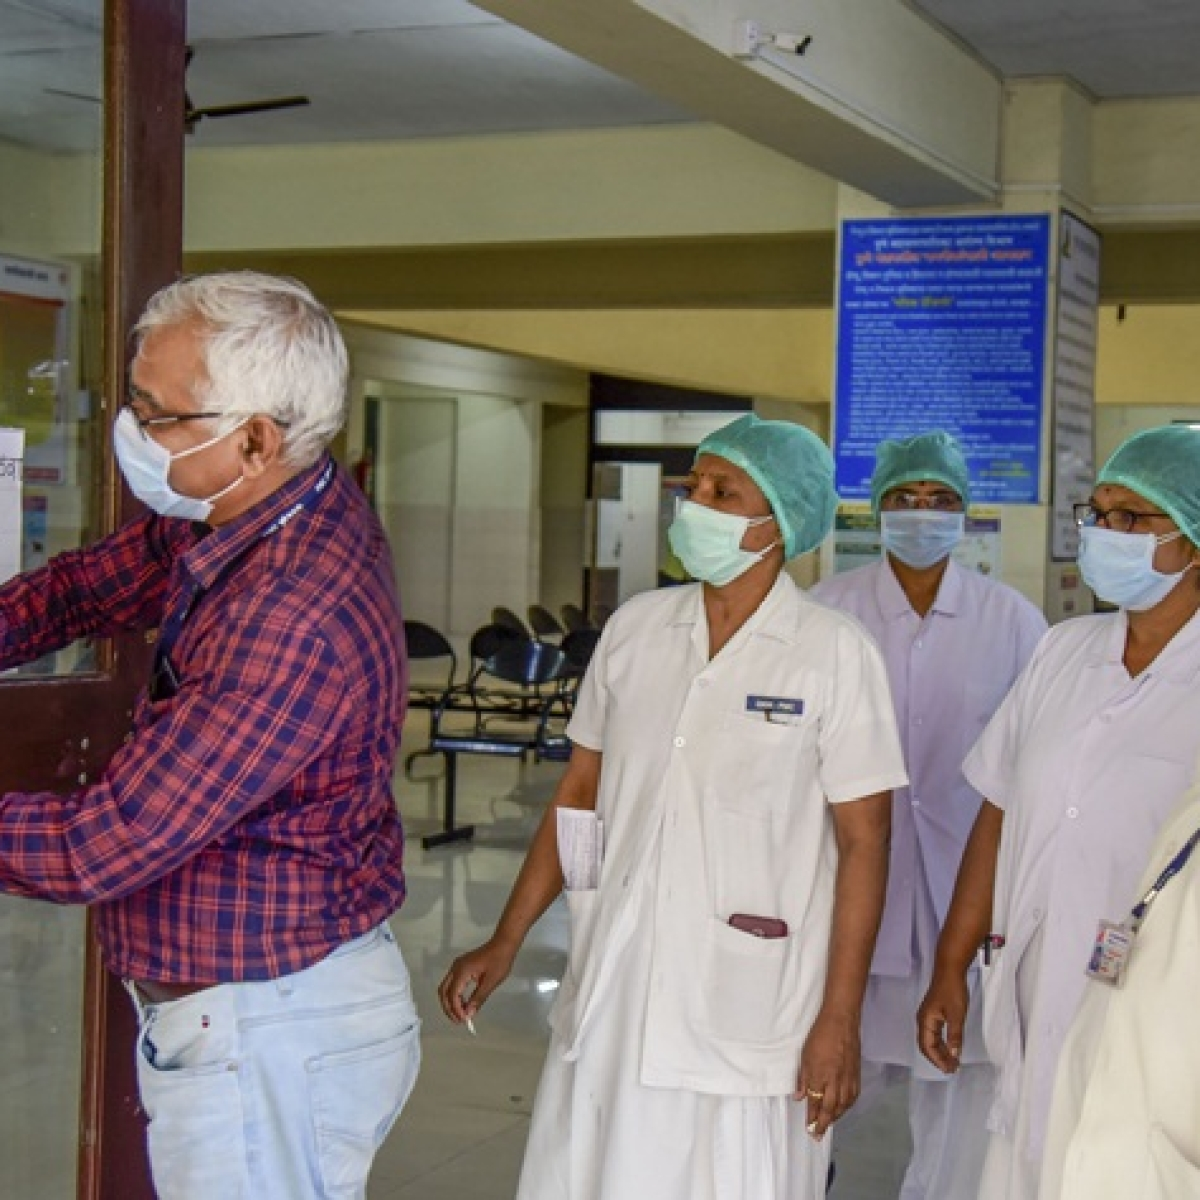 Coronavirus in Pune: 10 latest updates on COVID-19 from Pune and Pimpri-Chincwad